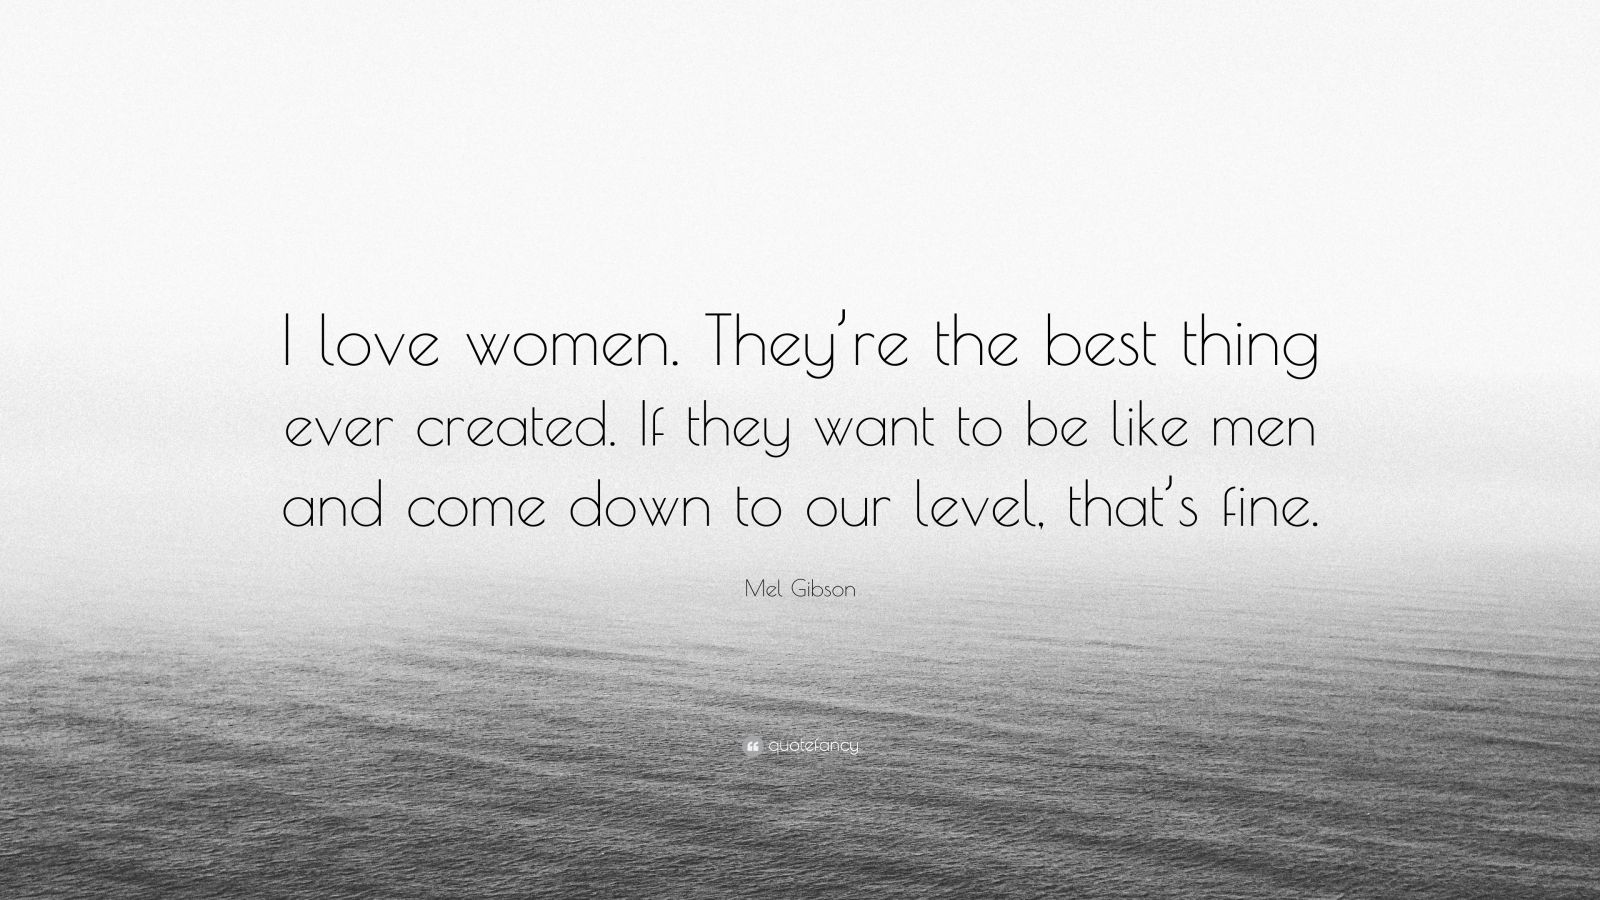 """Mel Gibson Quote: """"I love women. They're the best thing ever created. If they want to be like men and come down to our level, that's fine."""""""